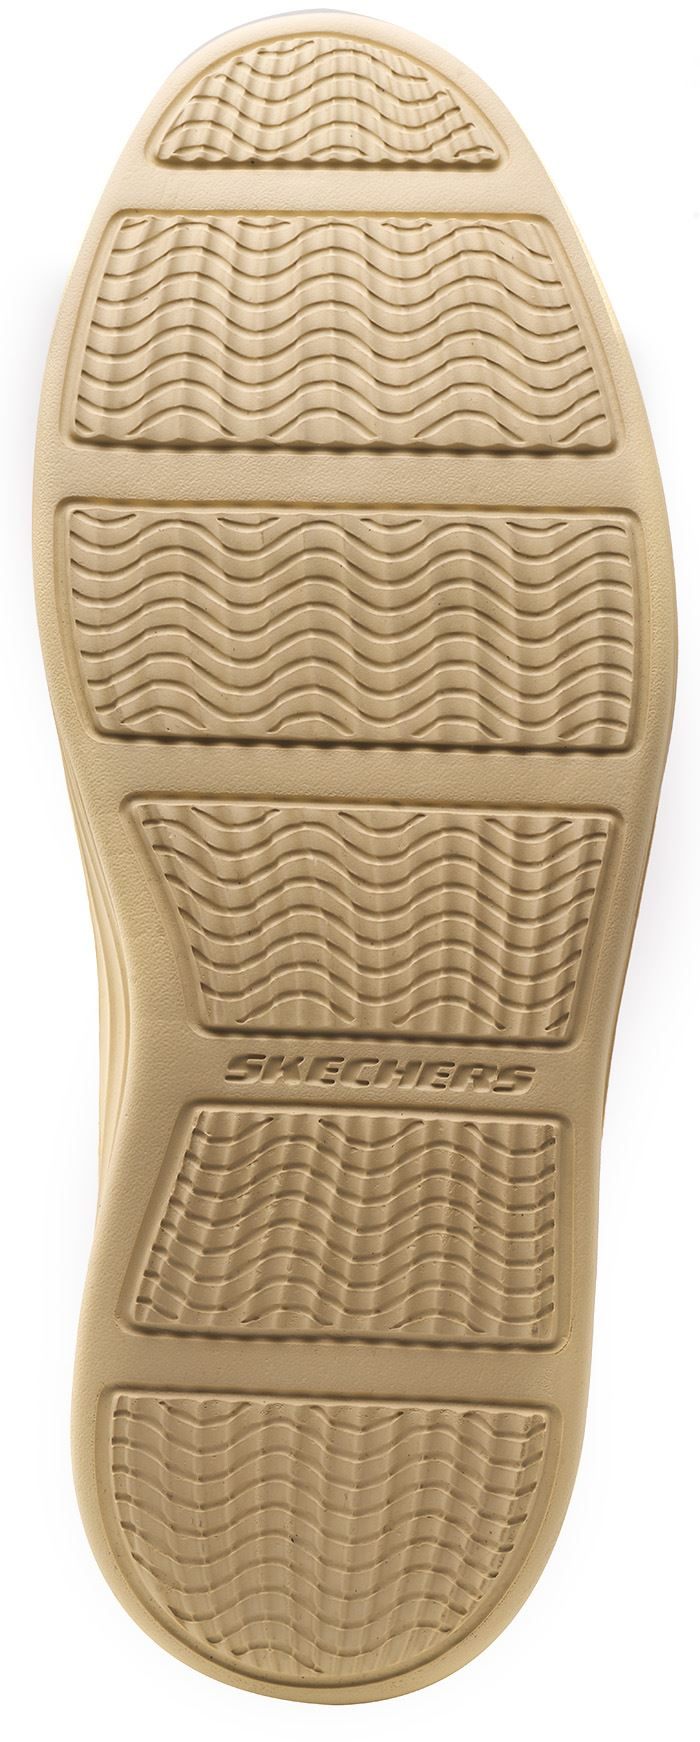 Skechers-Status-Former-Oiled-Leather-Boat-Deck-Shoes-in-Navy-Blue-amp-Brown-65894 thumbnail 9